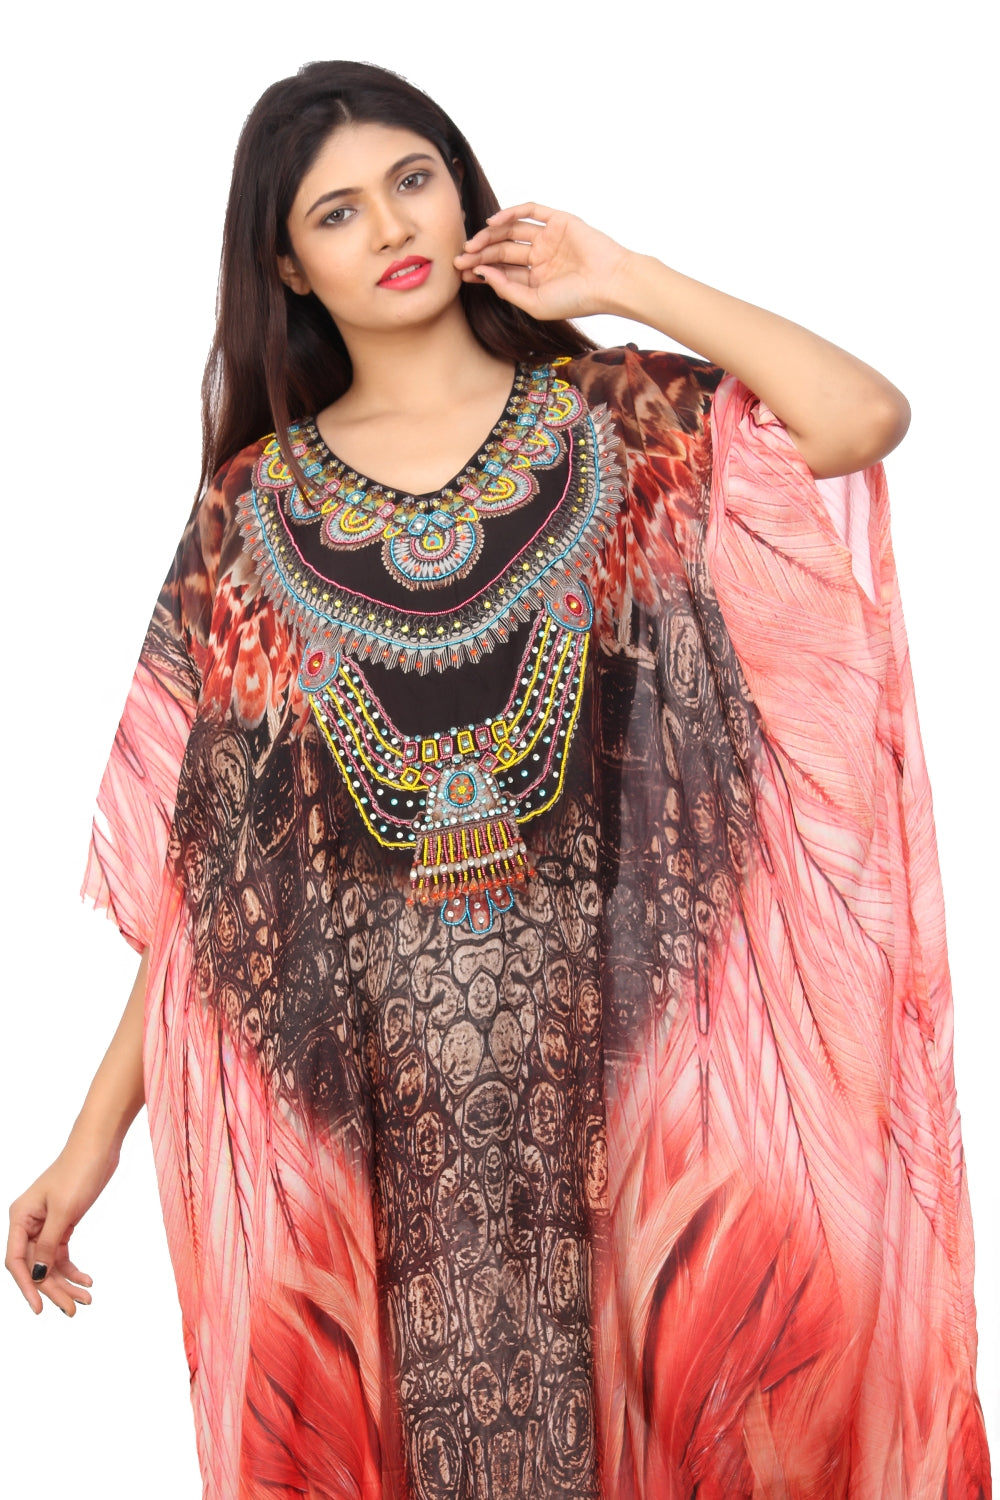 Python print over kaftan Cover with tribal pattern near neckline jewelled up with beads and unique style luxe beach kaftan - Silk kaftan